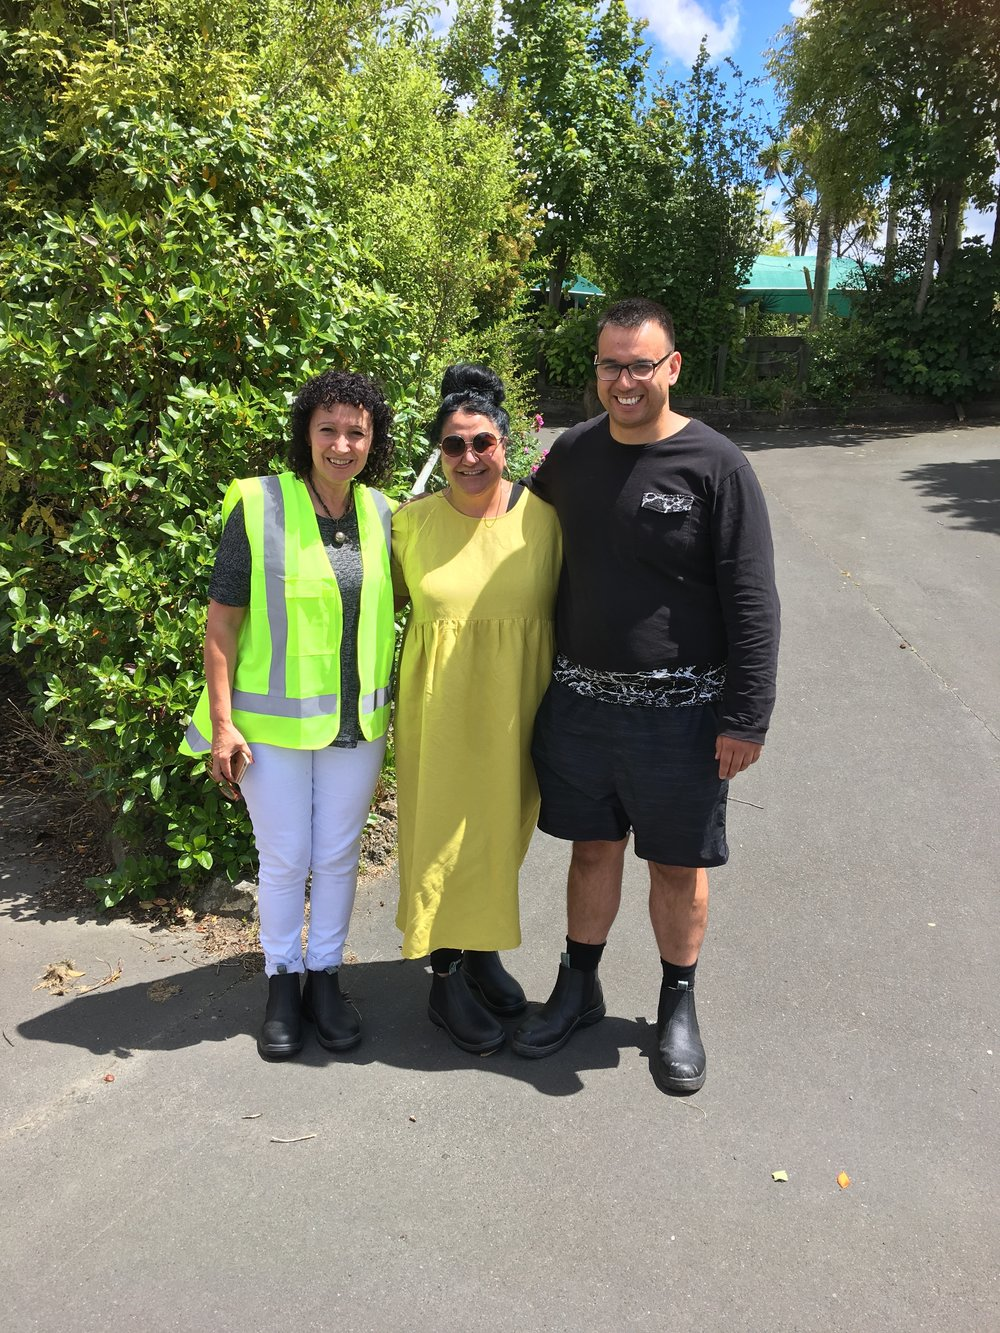 What a pleasure to spend time with these three: Shelley Kapua, Donna Matahaere-Atariki and Albie Lawrence; who were practically giggling with excitement in showing me the site as their dream starts to appear before them.